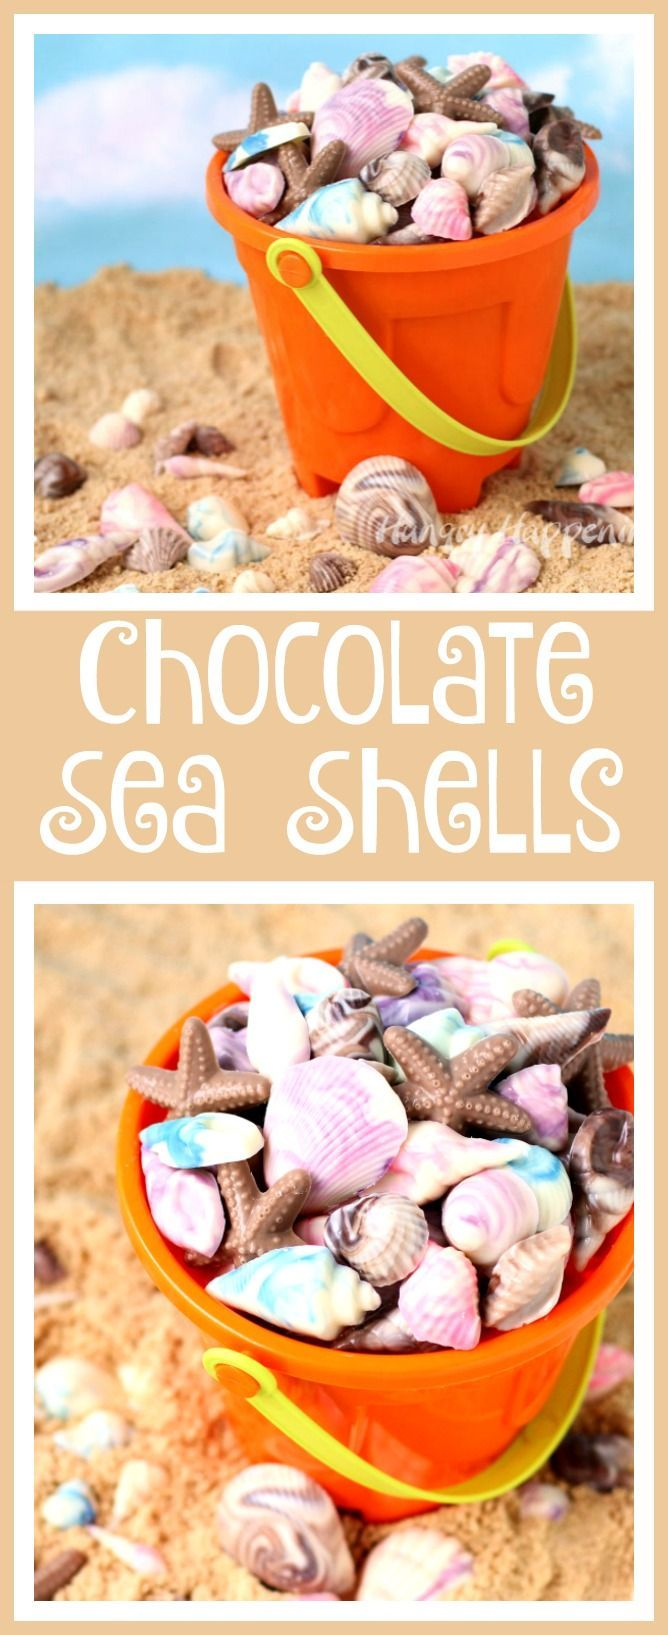 Swirl colored chocolate together to create beautiful Chocolate Sea Shells. See the step-by-step tutorial at HungryHappenings.com.